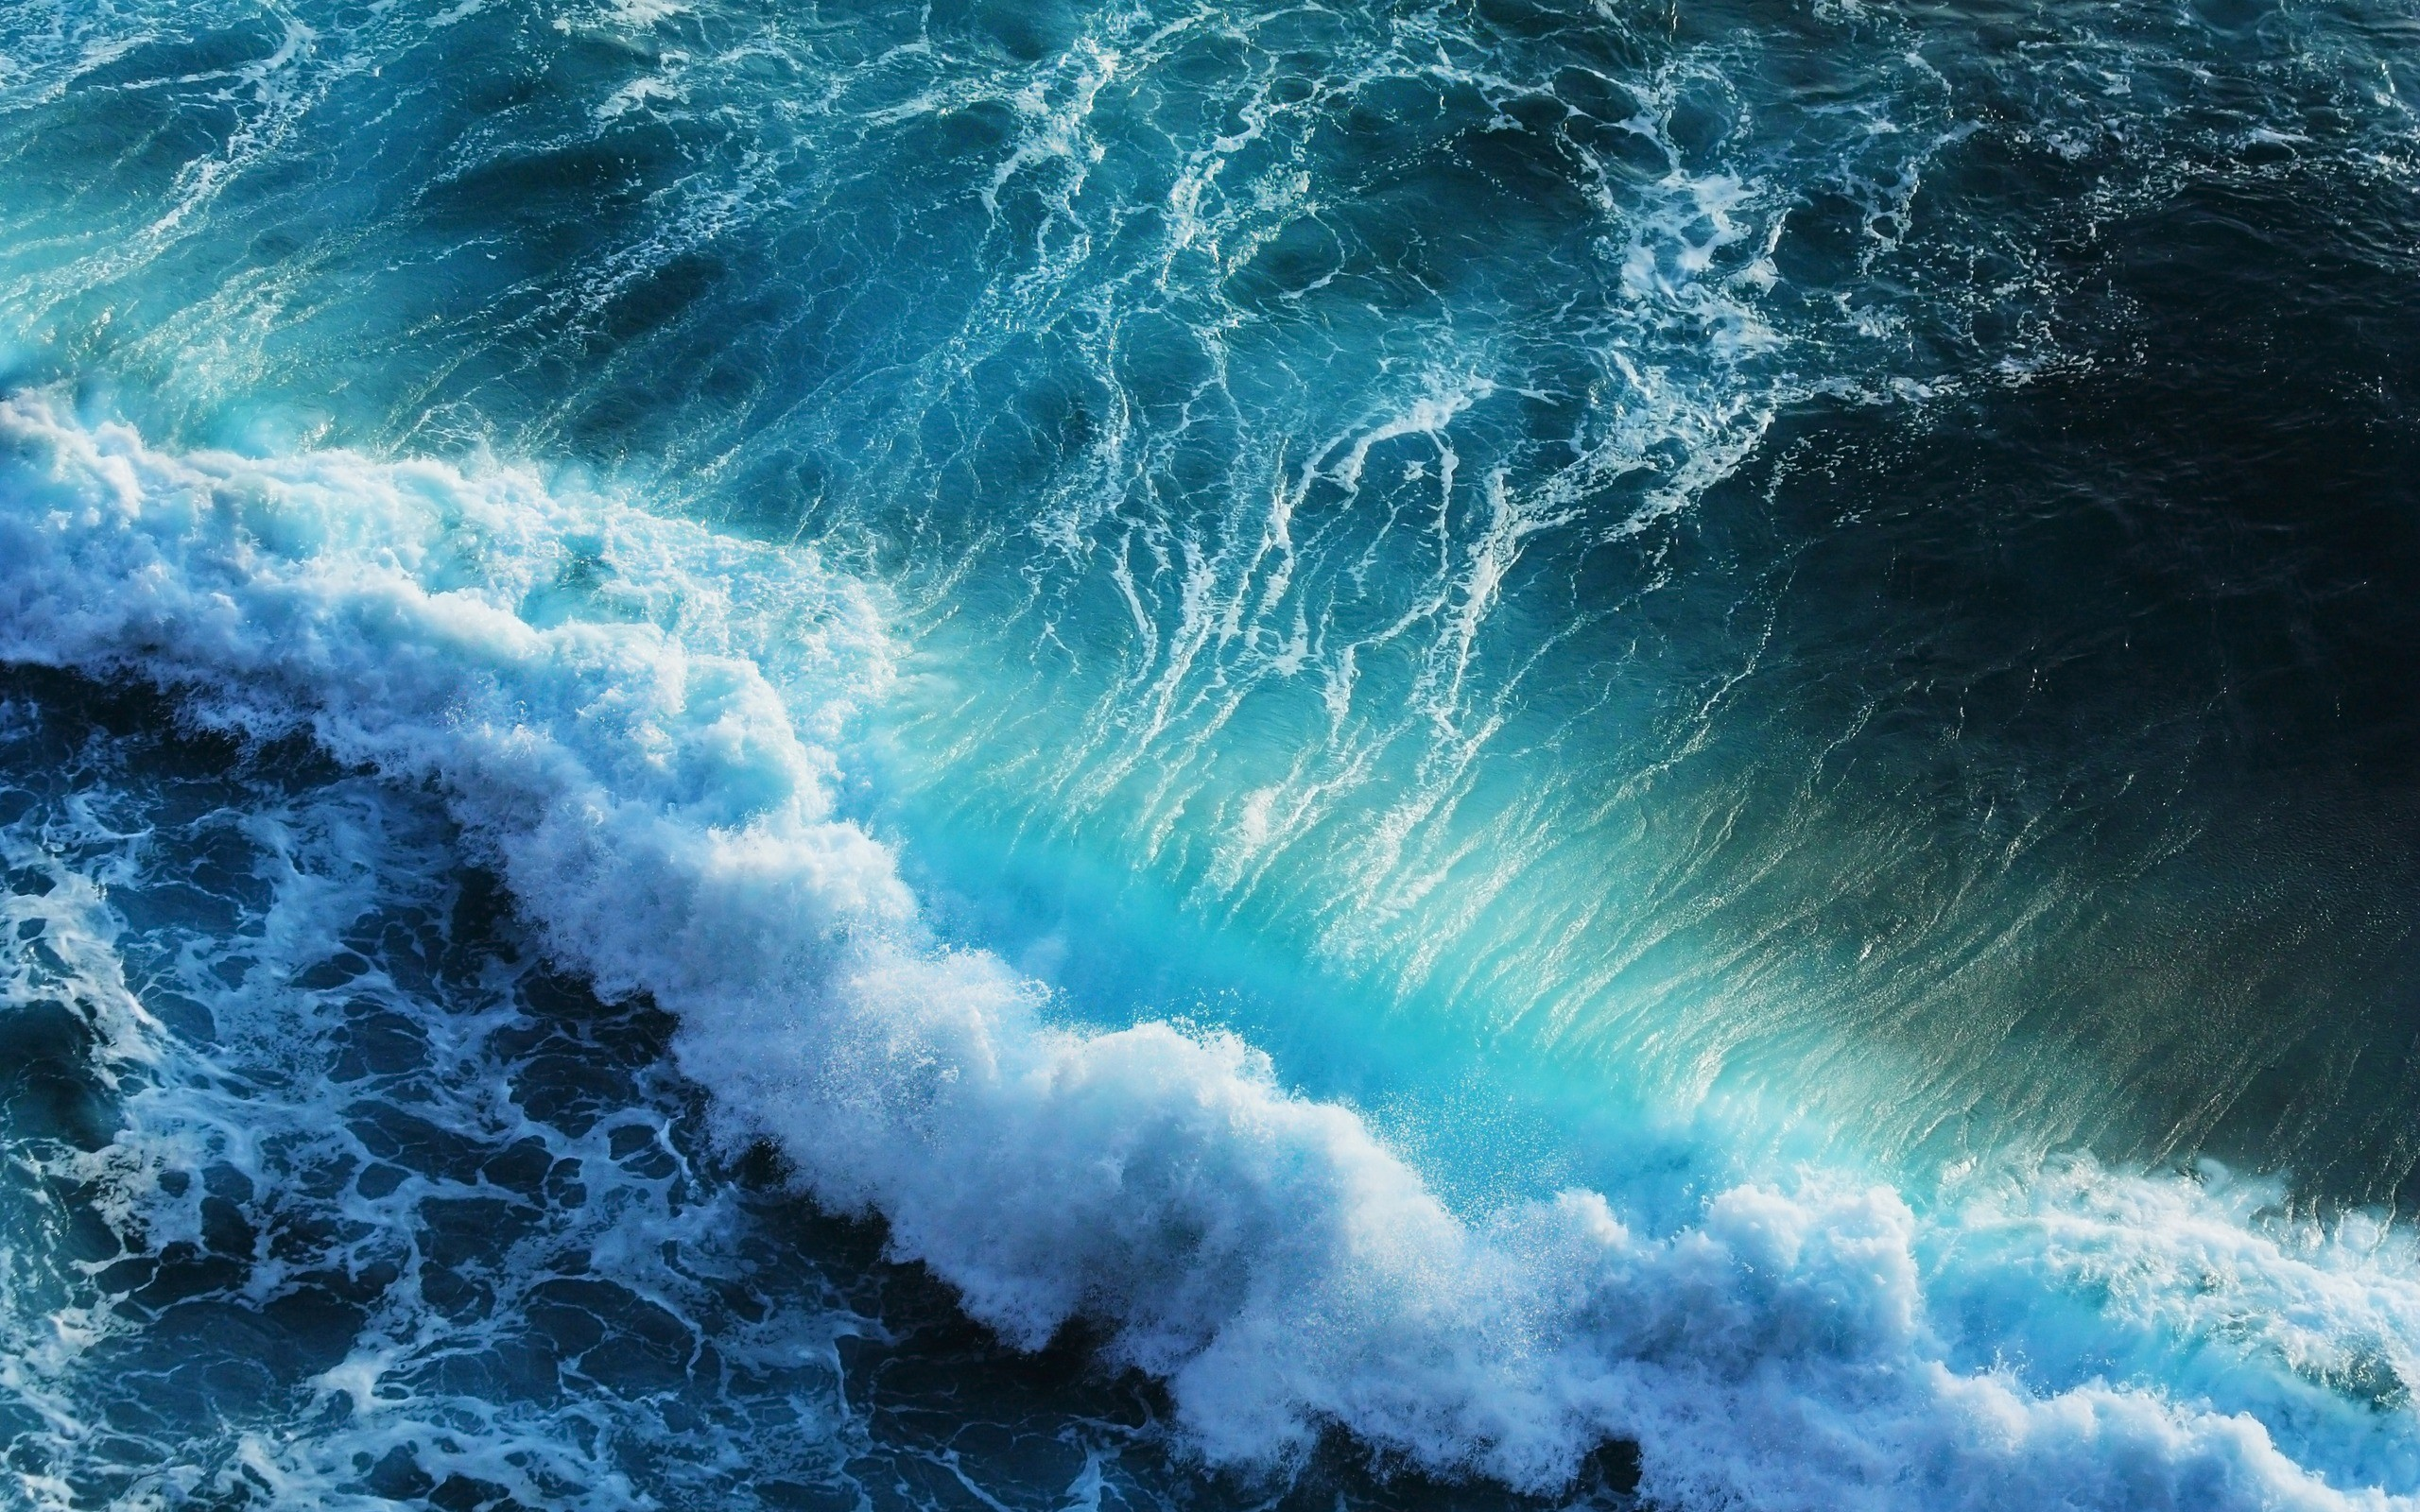 Ocean Waves Wallpaper